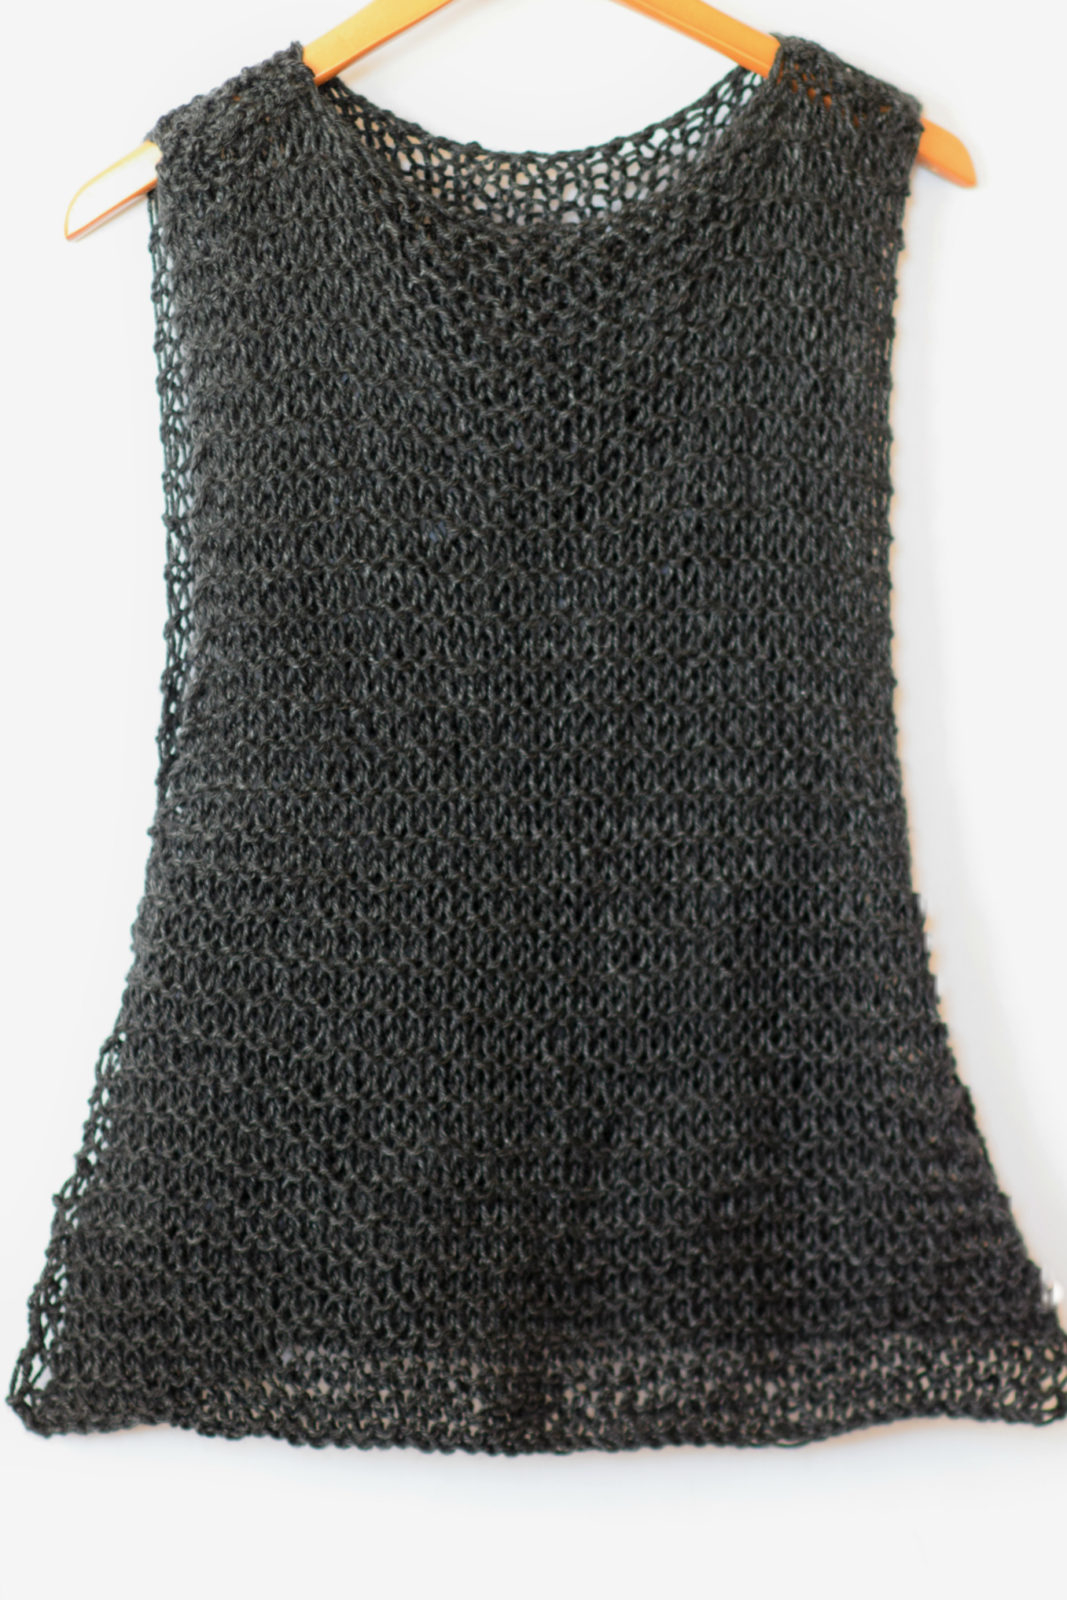 Knitted Tank Top Patterns Easy Little Black Tank Top Knitting Pattern Mama In A Stitch